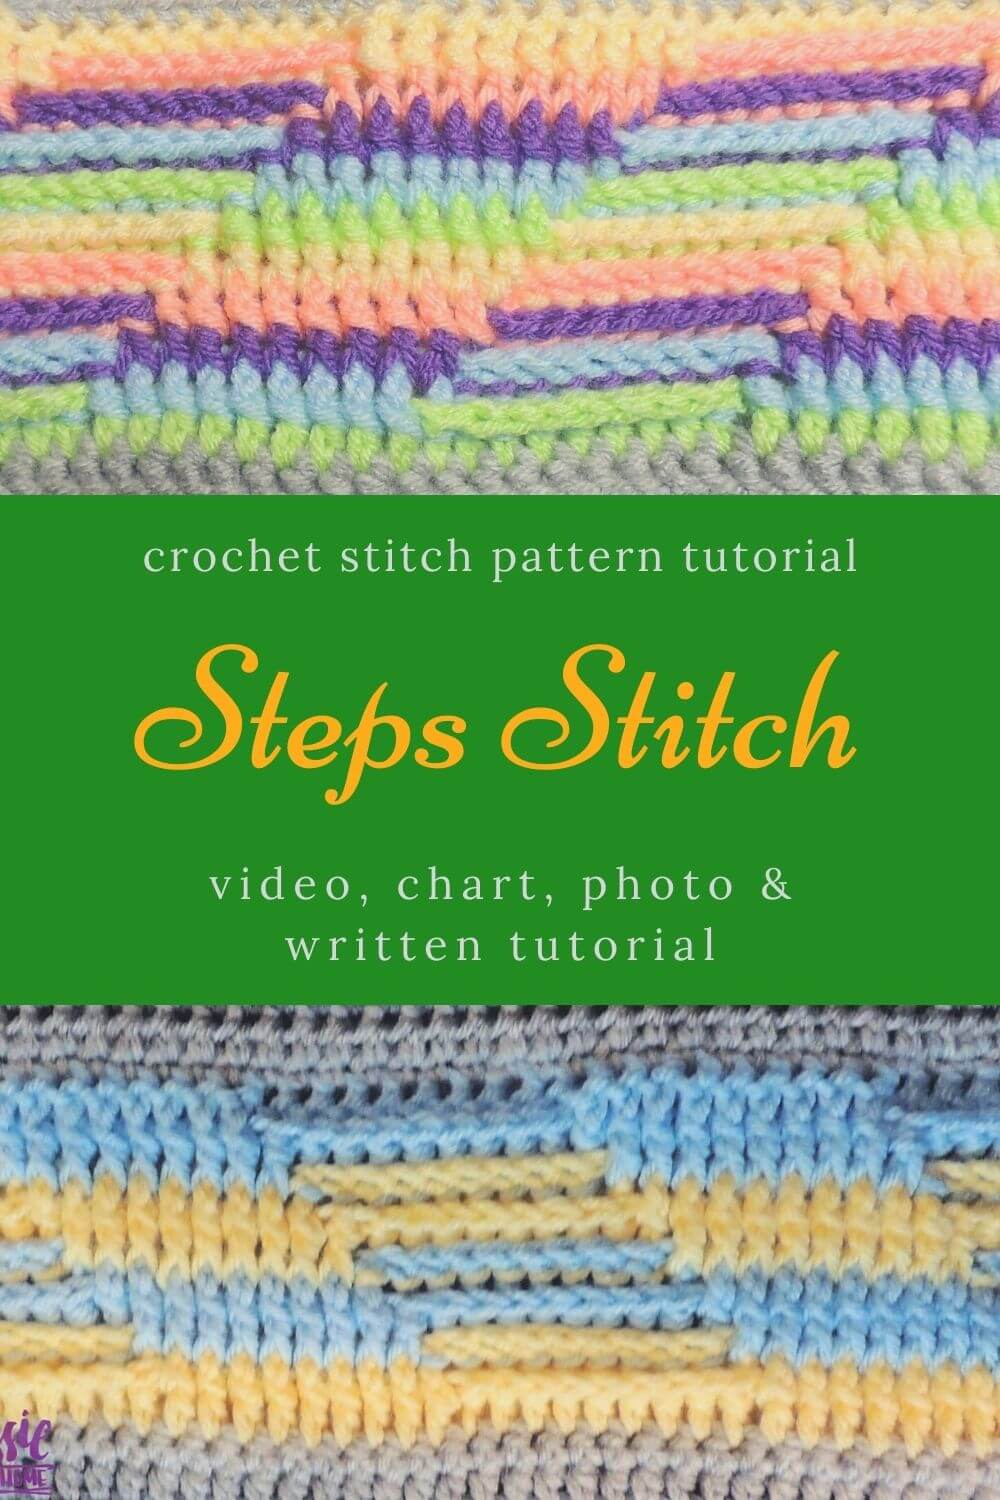 Step Up Your Crochet - Steps Stitch free tutorial